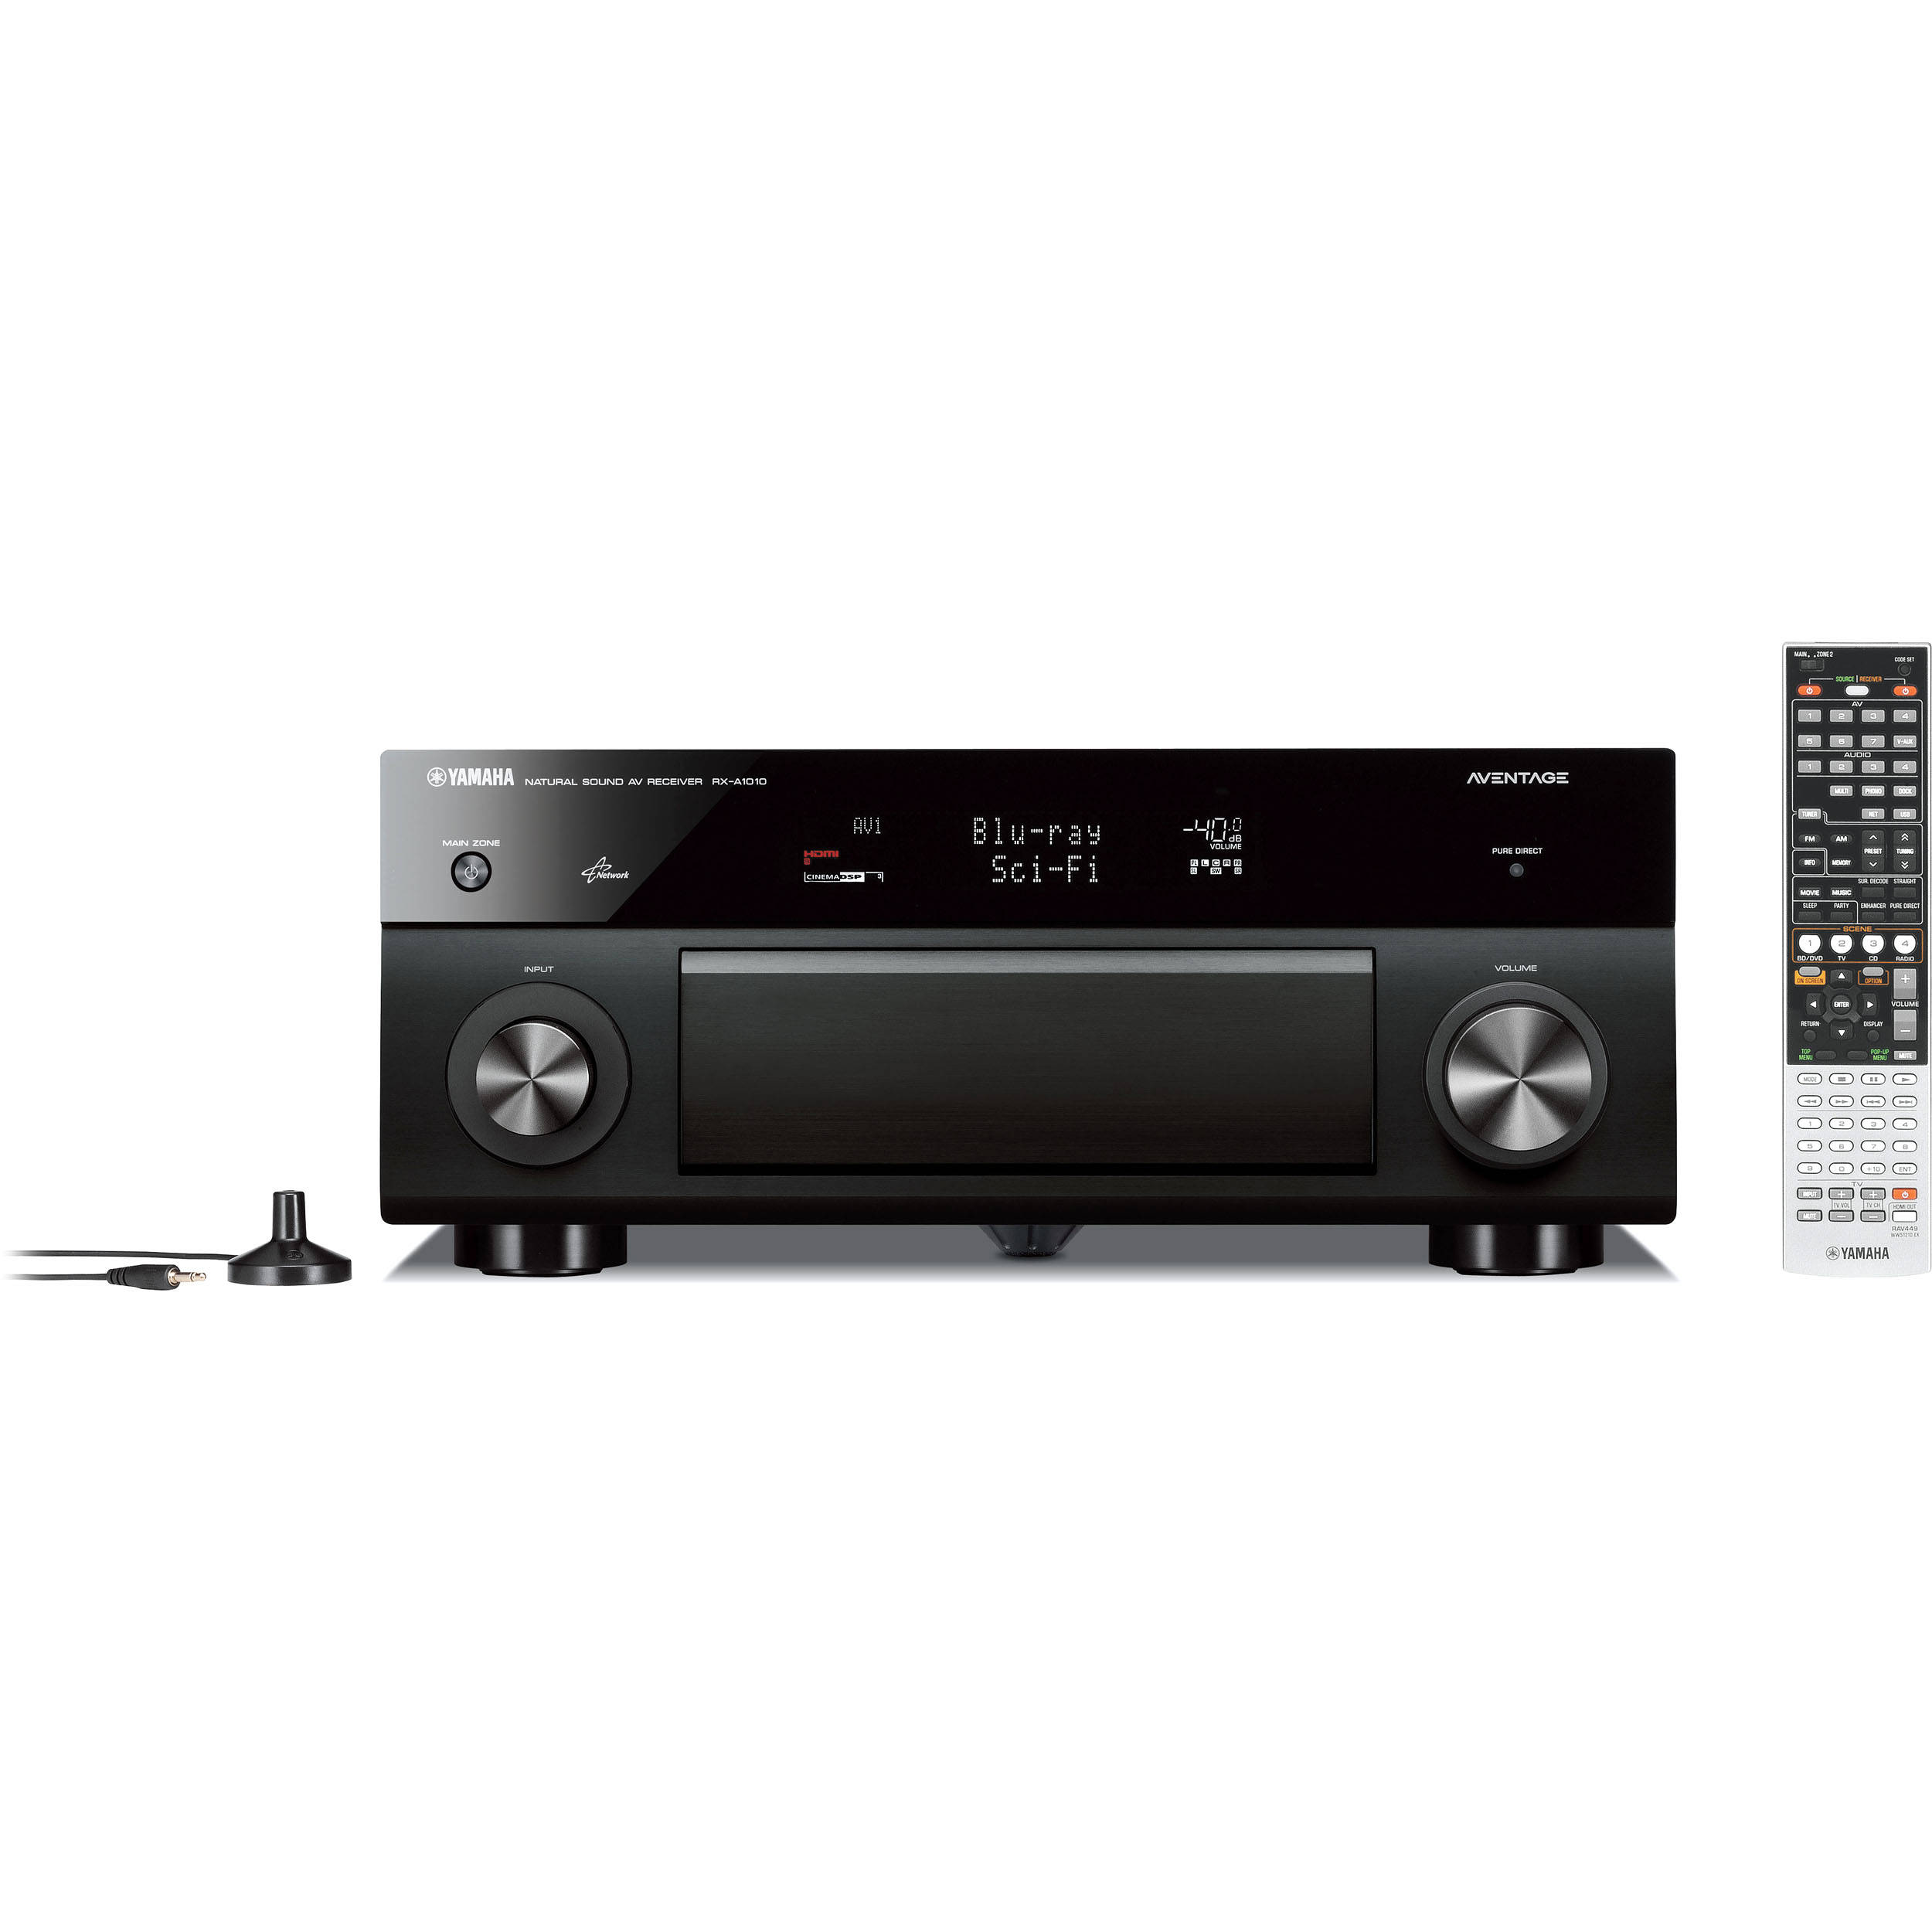 Yamaha rx a1010 7 2 channel a v receiver black rx for Yamaha 7 2 receiver reviews